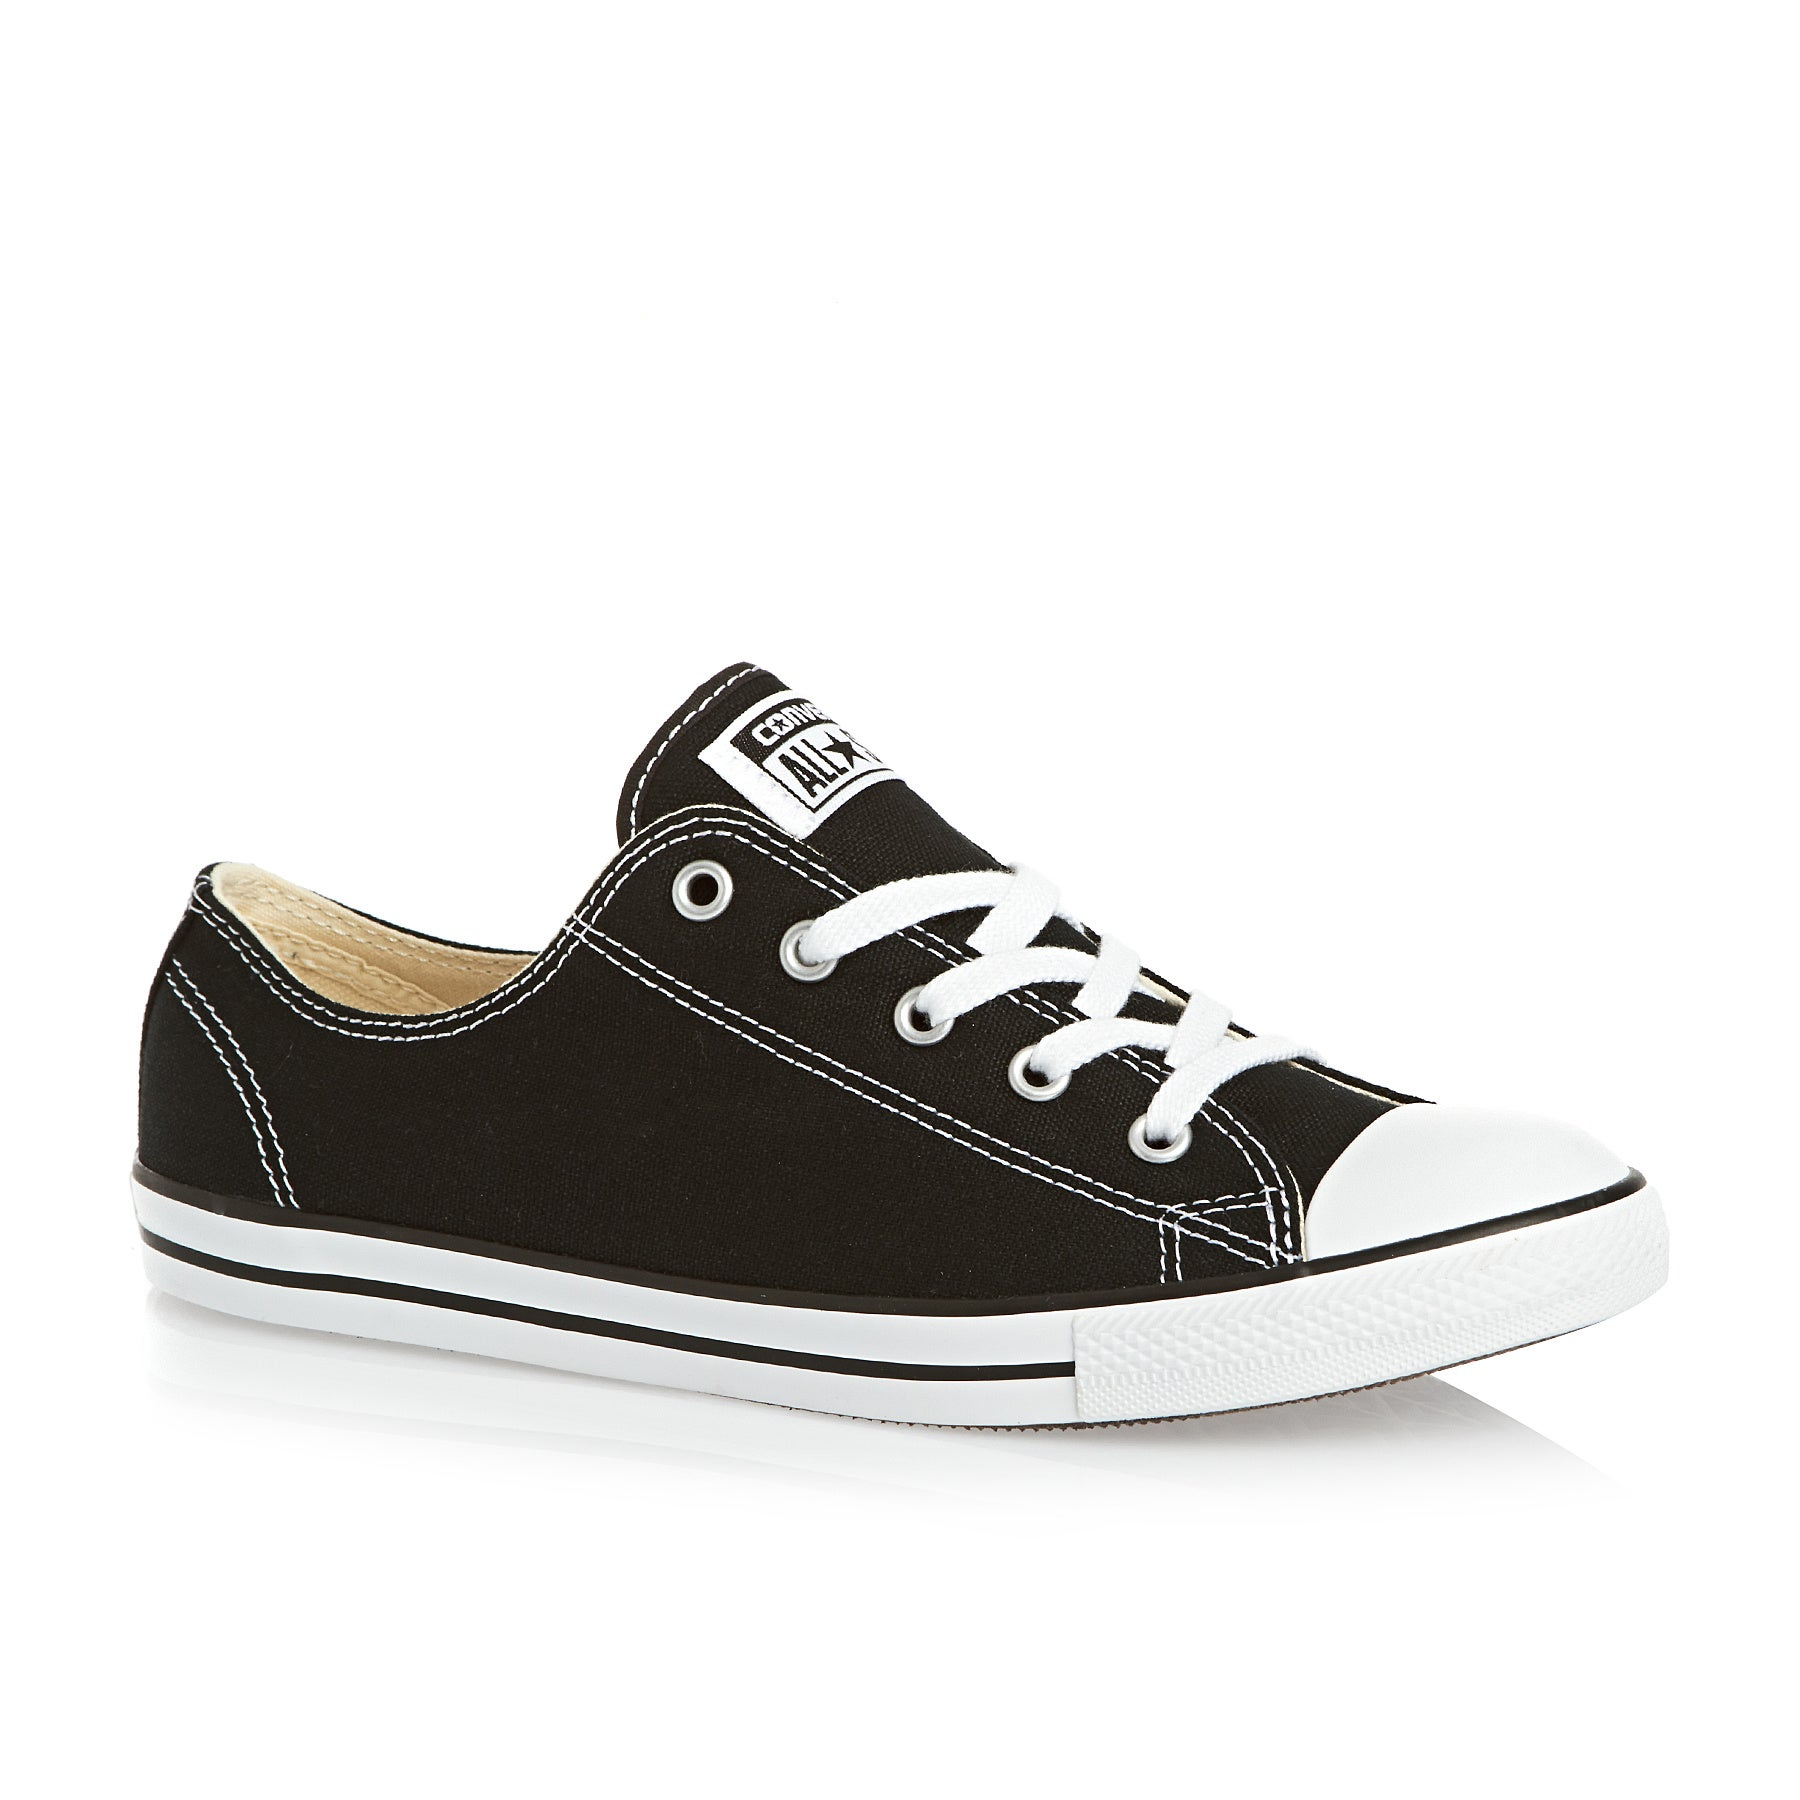 84e73283b657 Converse Chuck Taylor All Stars Dainty Ox Womens Shoes available ...